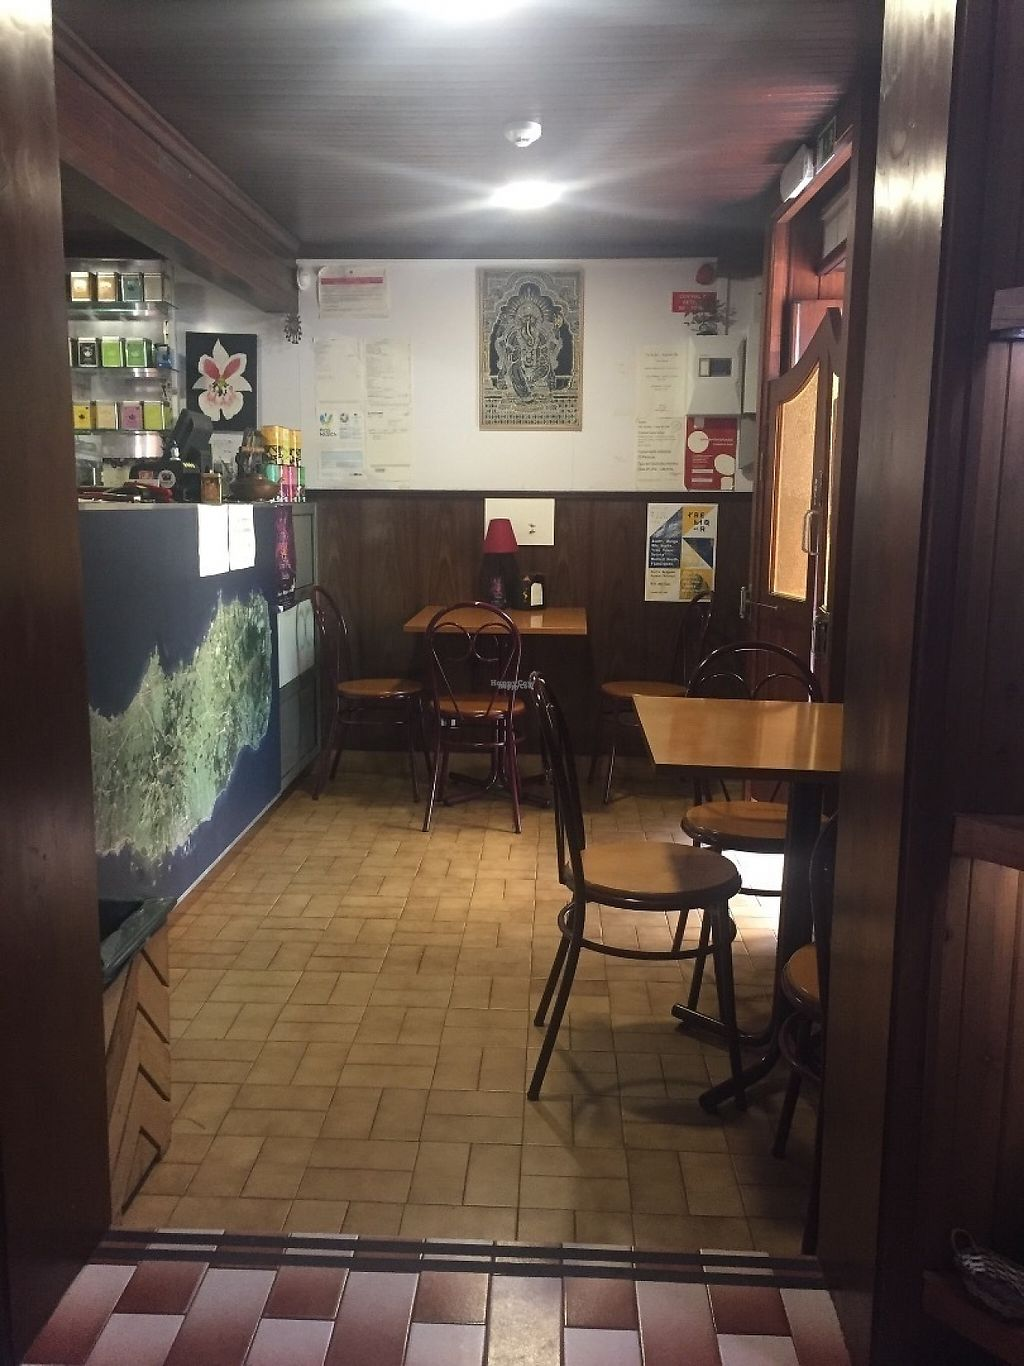 """Photo of Pes Verdes - Casa de Cha  by <a href=""""/members/profile/StevieSurf"""">StevieSurf</a> <br/>The bar area <br/> April 17, 2017  - <a href='/contact/abuse/image/72466/249354'>Report</a>"""